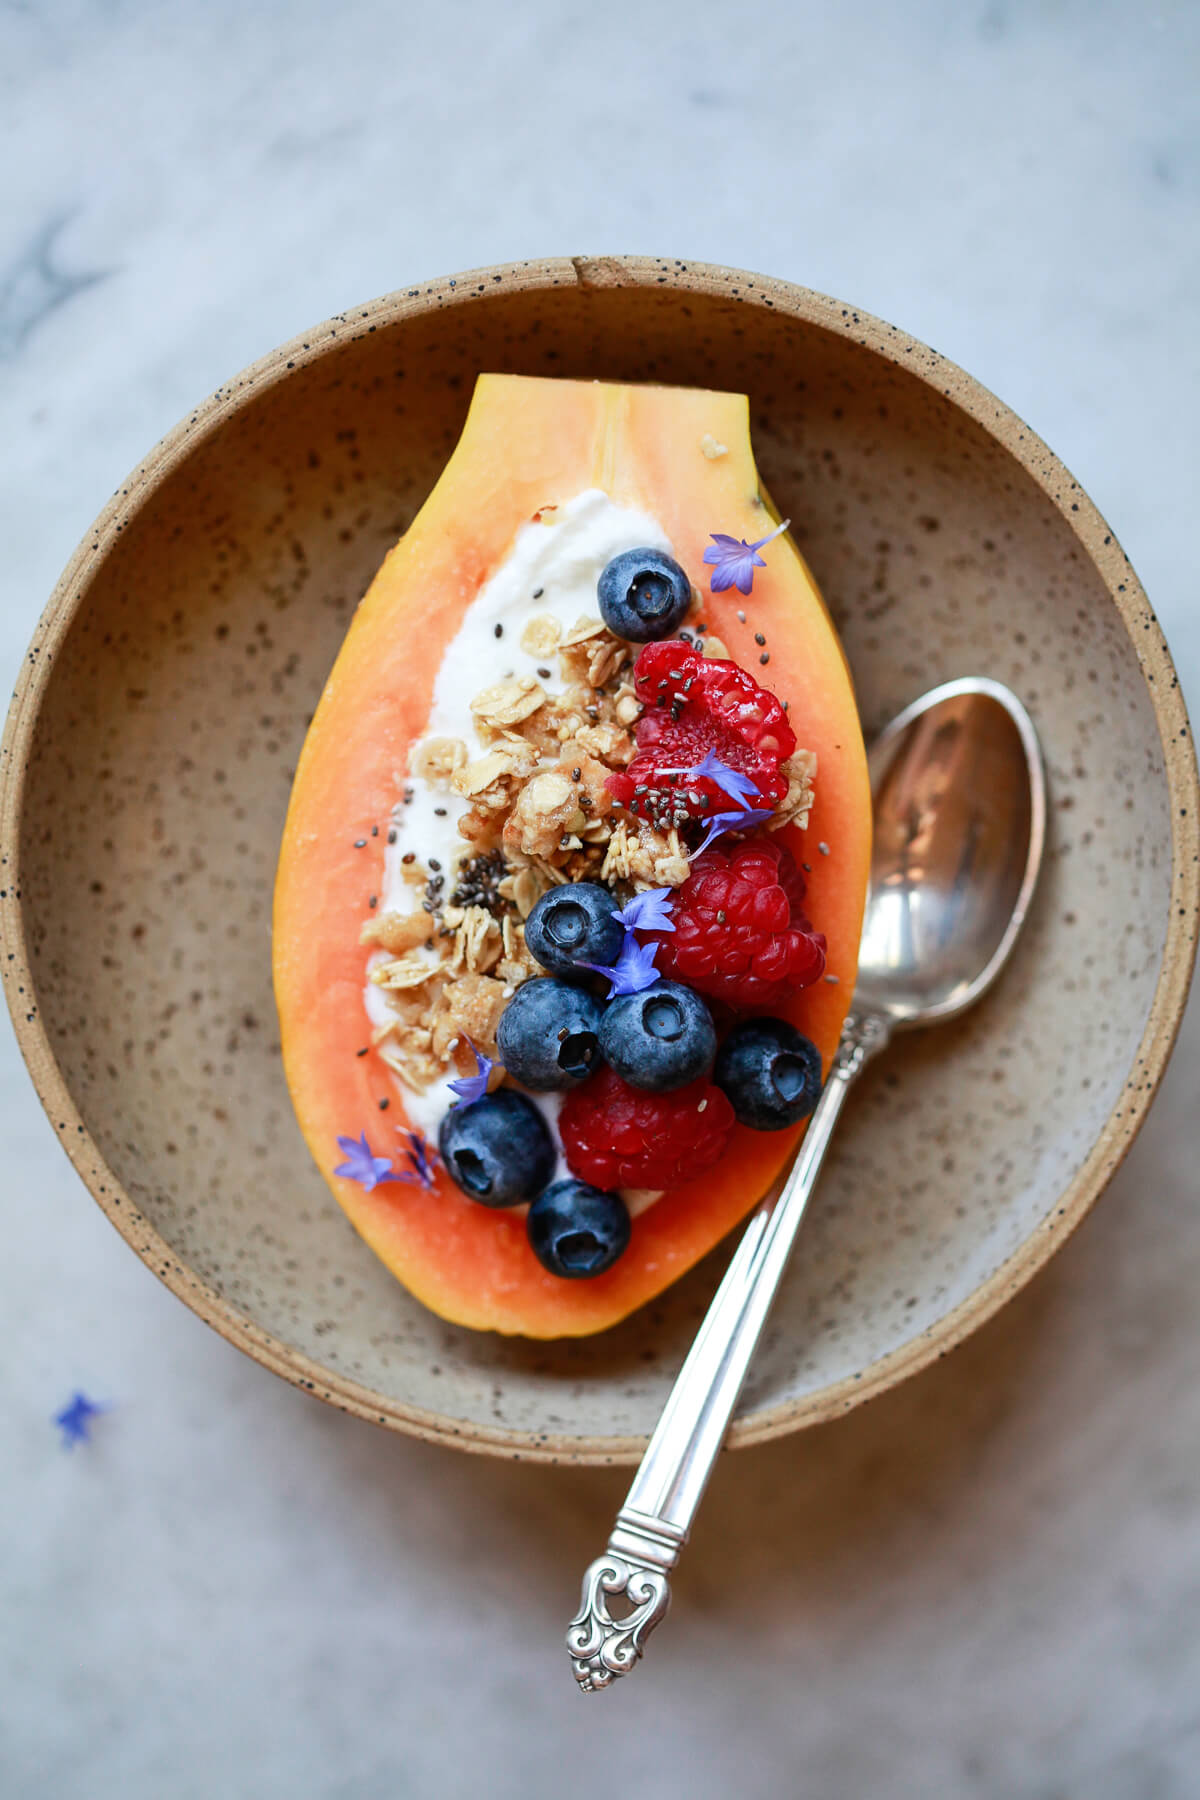 A papaya boat filled with yogurt, granola, and berries in a stone bowl with a silver spoon.